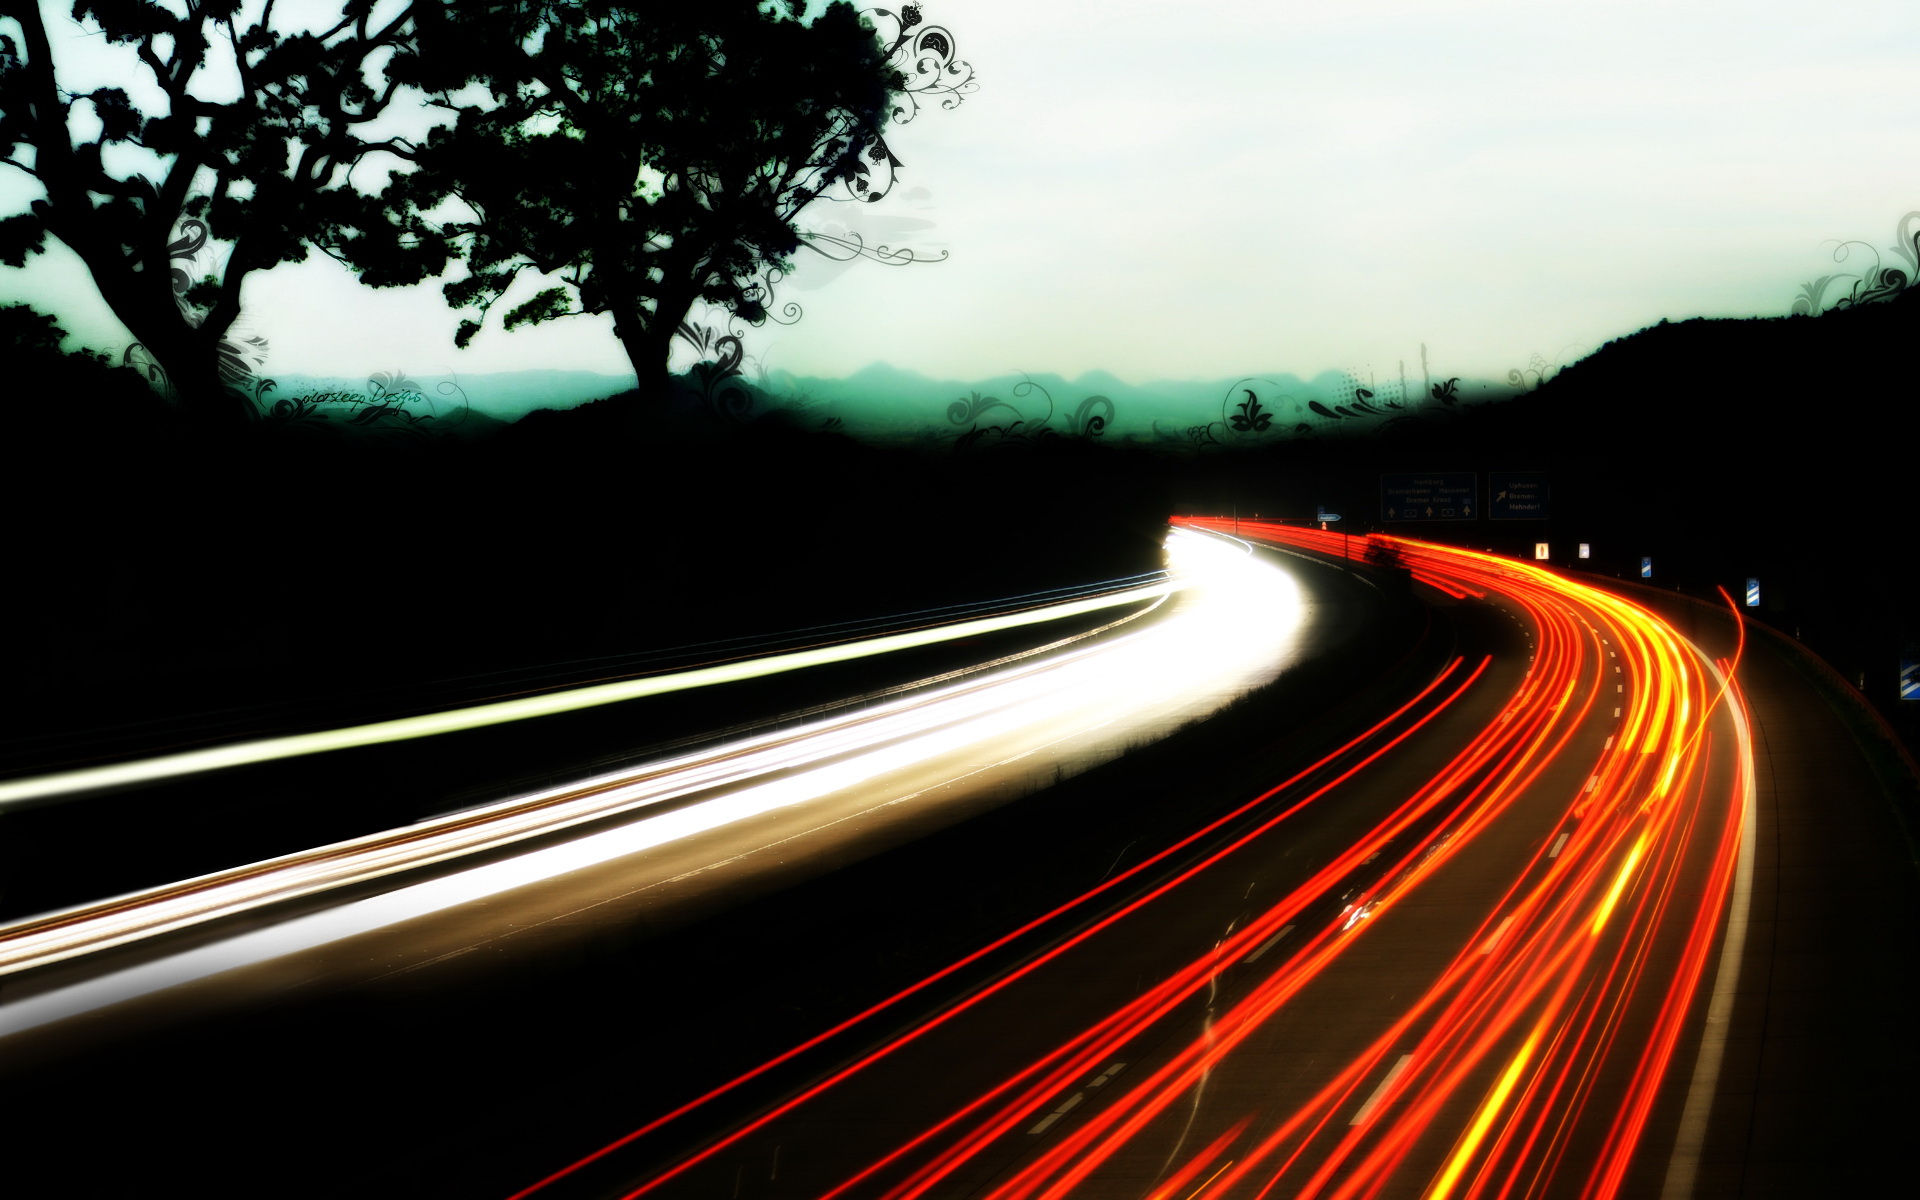 Traffic Road At Night | Free Desktop Wallpapers for Widescreen, HD ... for Traffic Light On Road At Night  300lyp